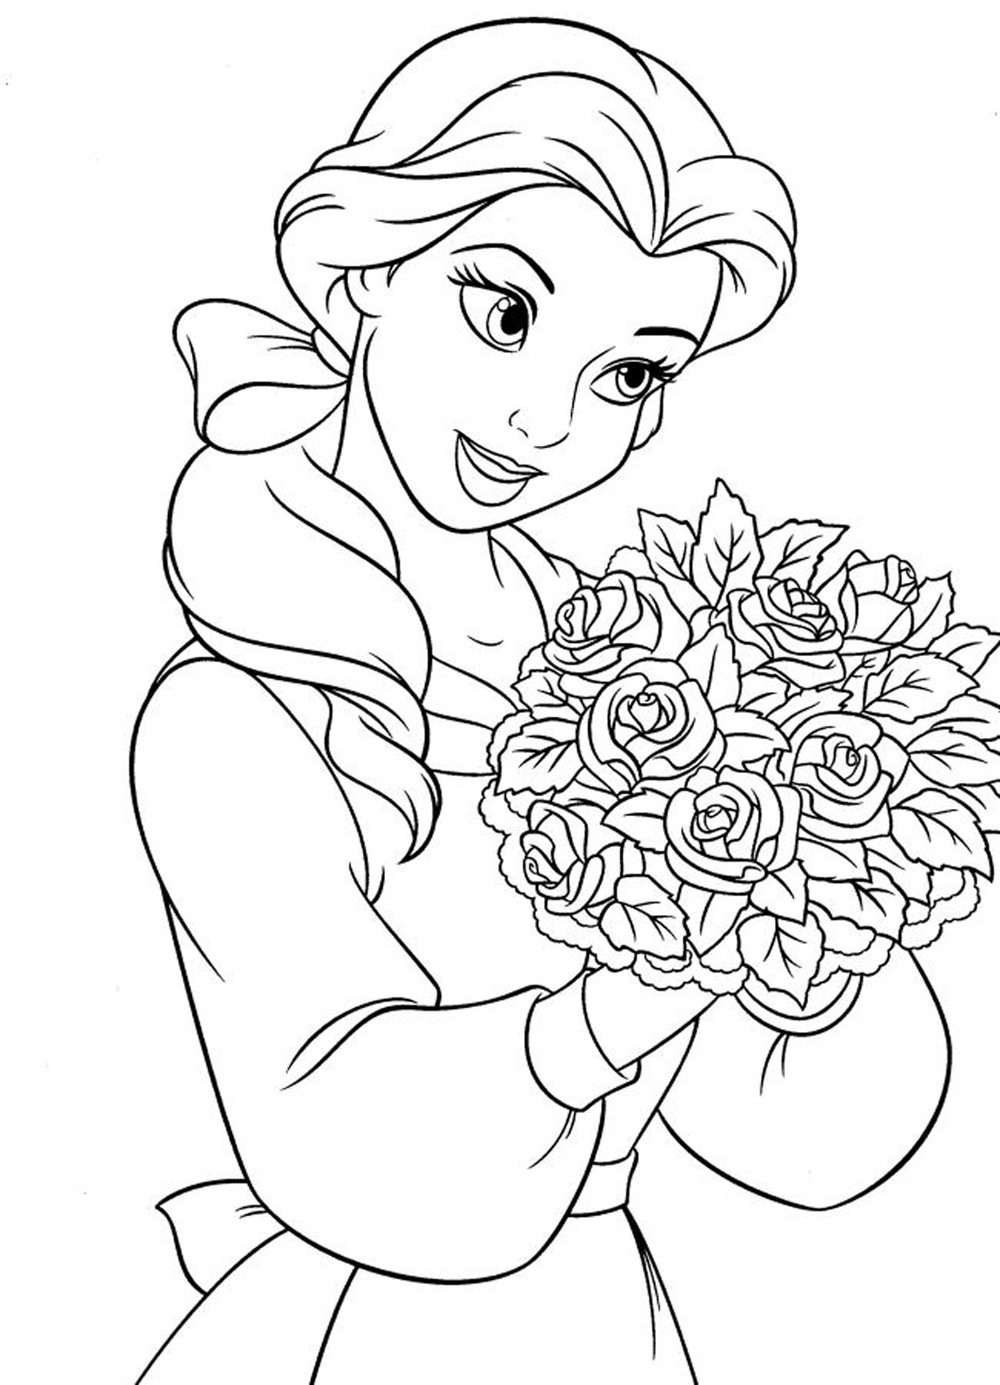 Disney Princesses Coloring Pages Free Printable Disney Princess Coloring Pages For Kids